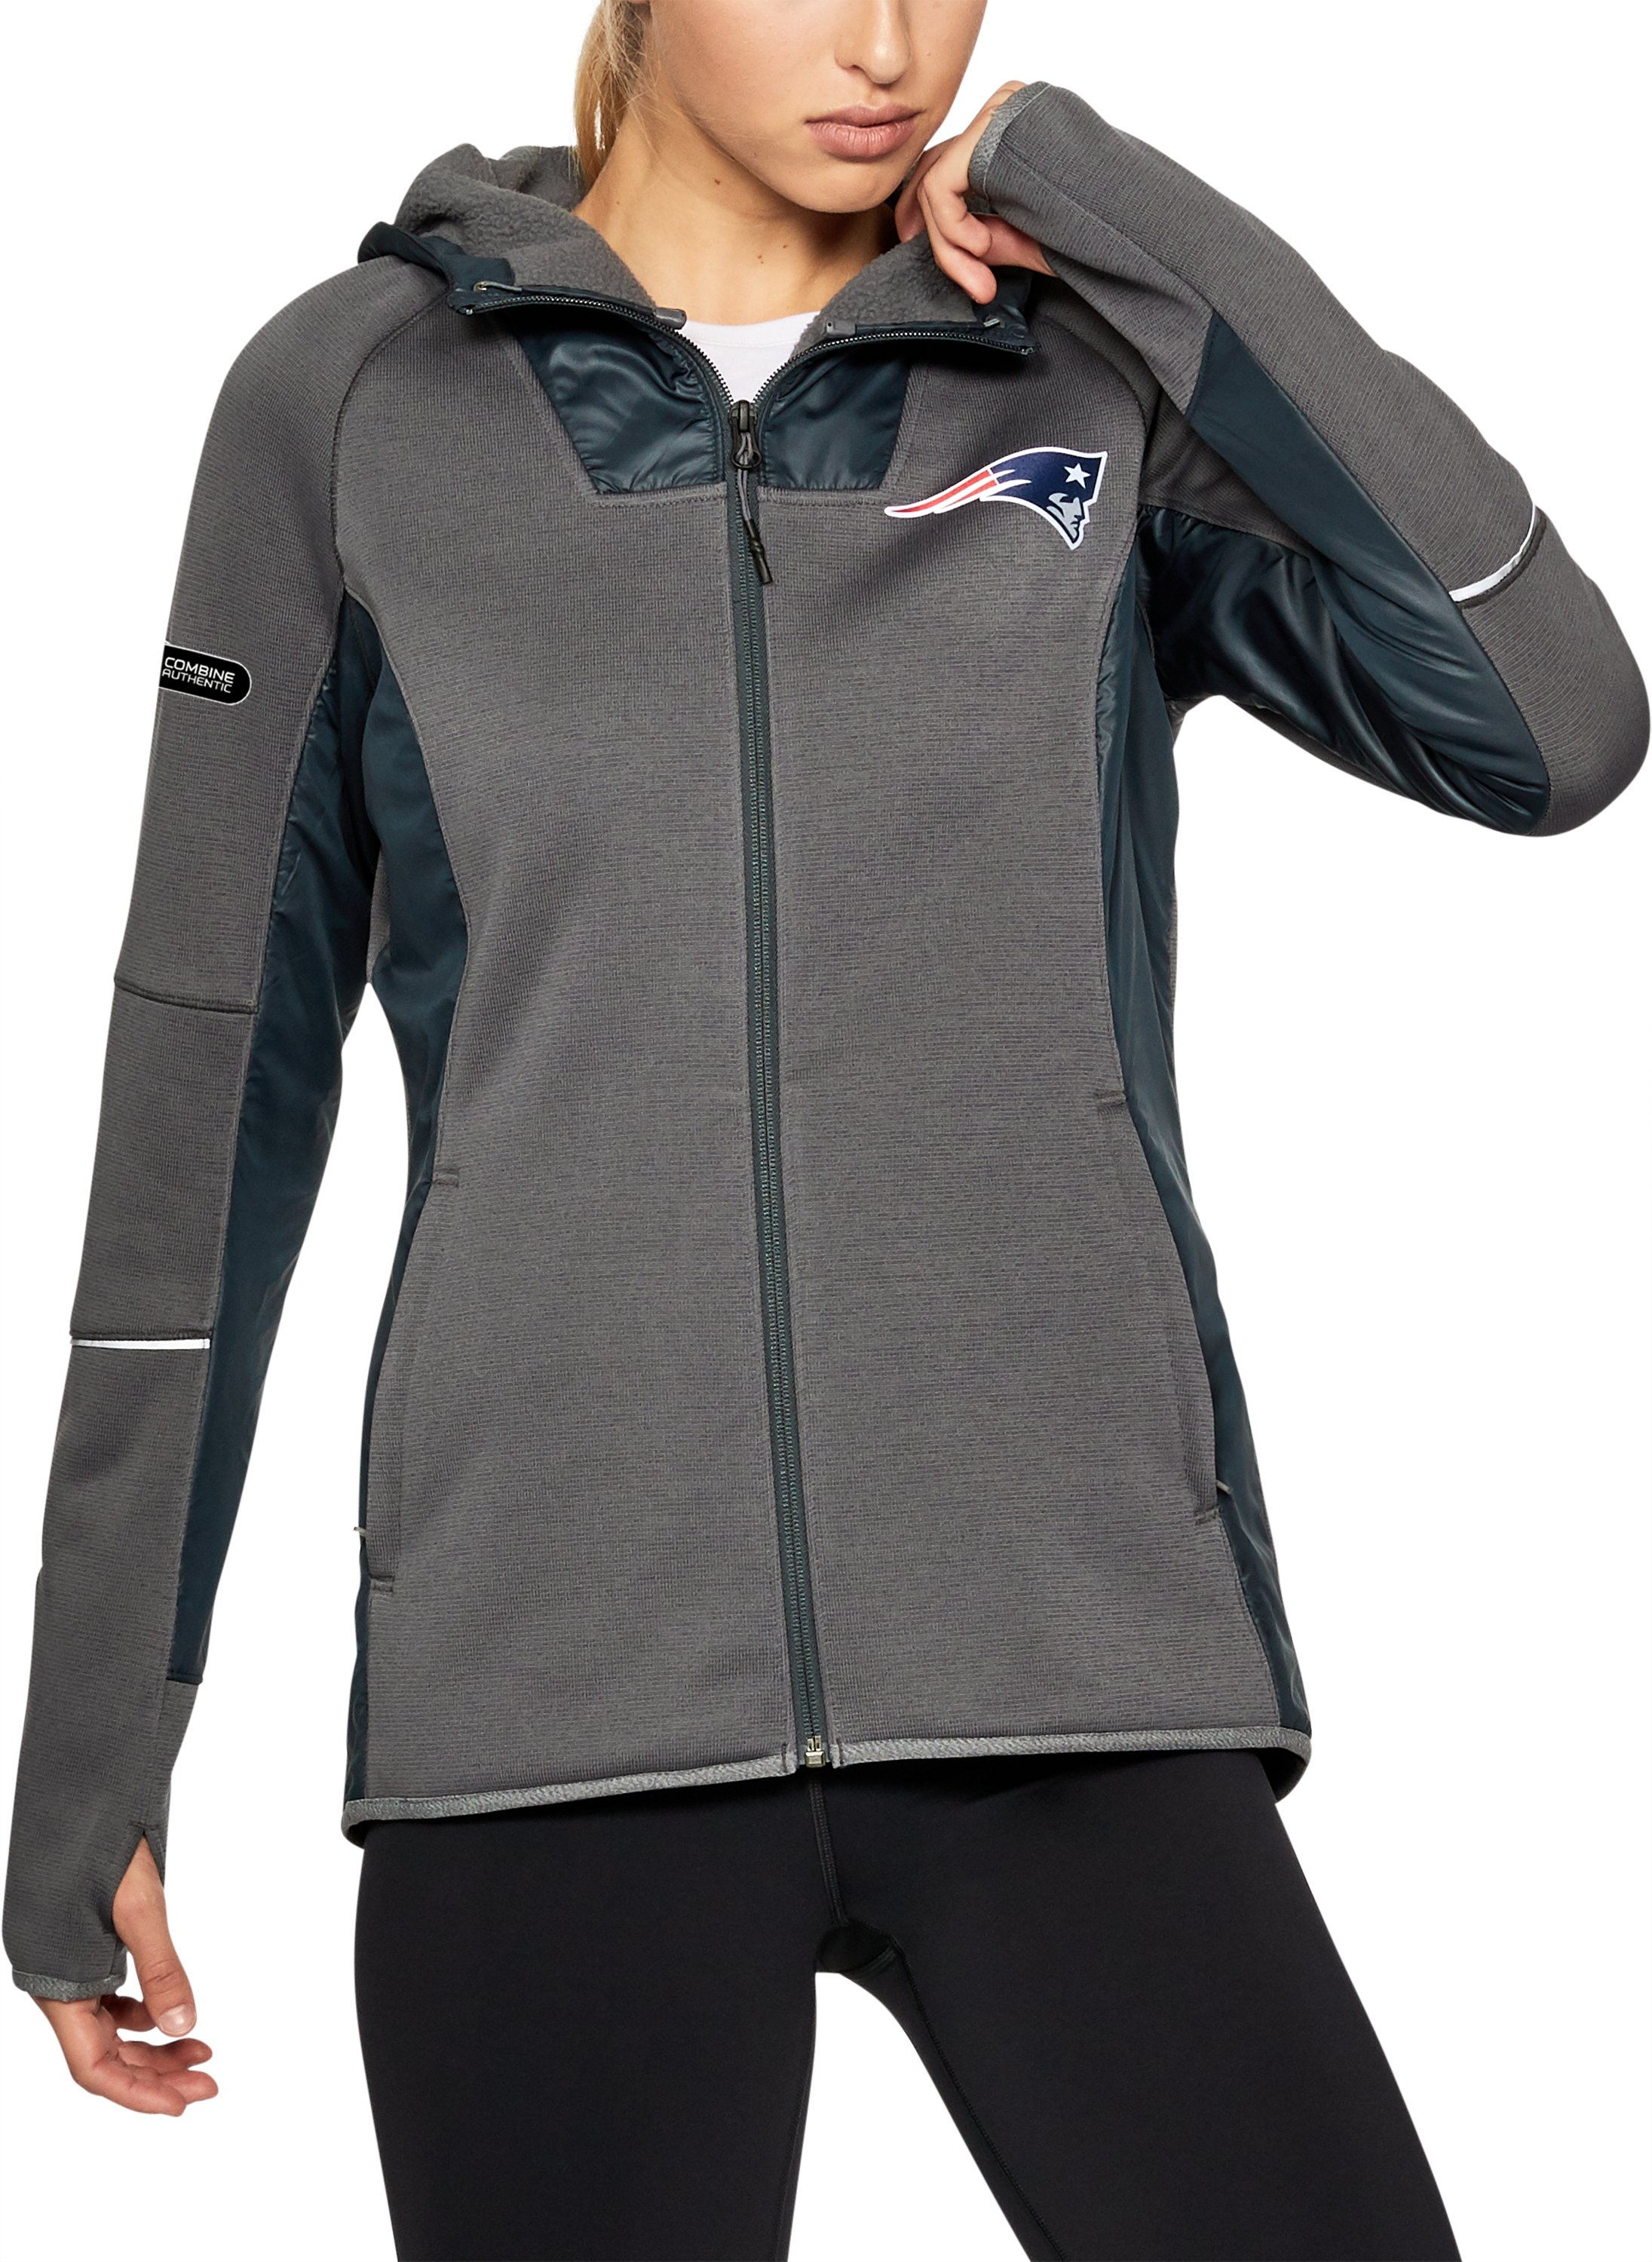 Women's NFL Combine Authentic Swacket, NFL_NEW ENGLAND PATRIOTS_STEALTH GRAY,